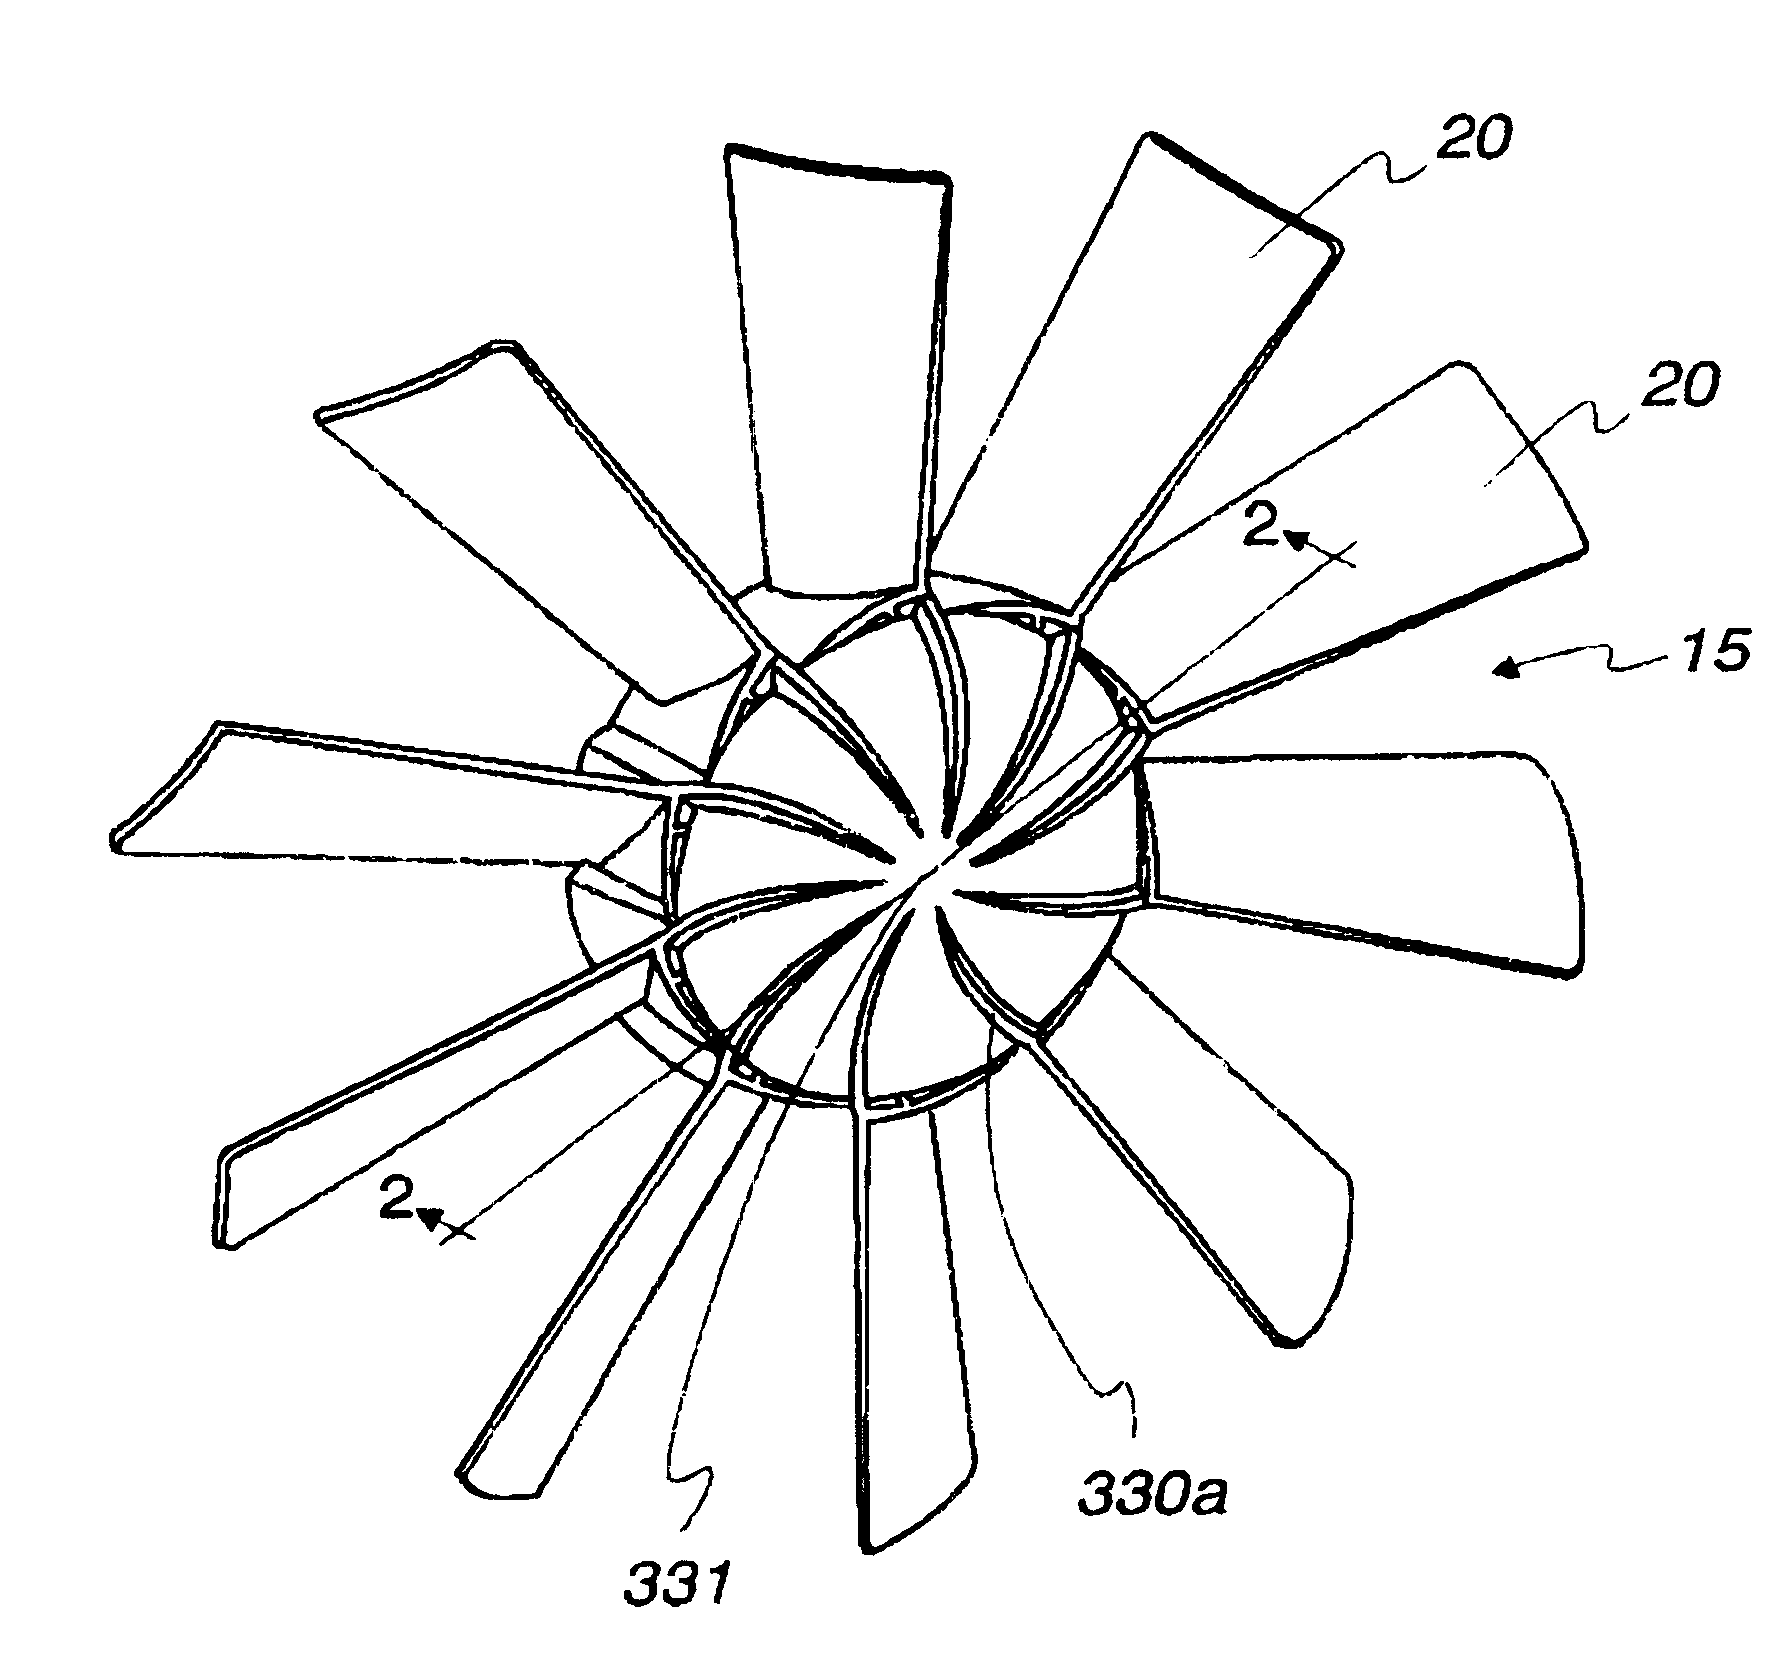 Fan Blade Drawing : Patent us fan clutch with central vanes to move